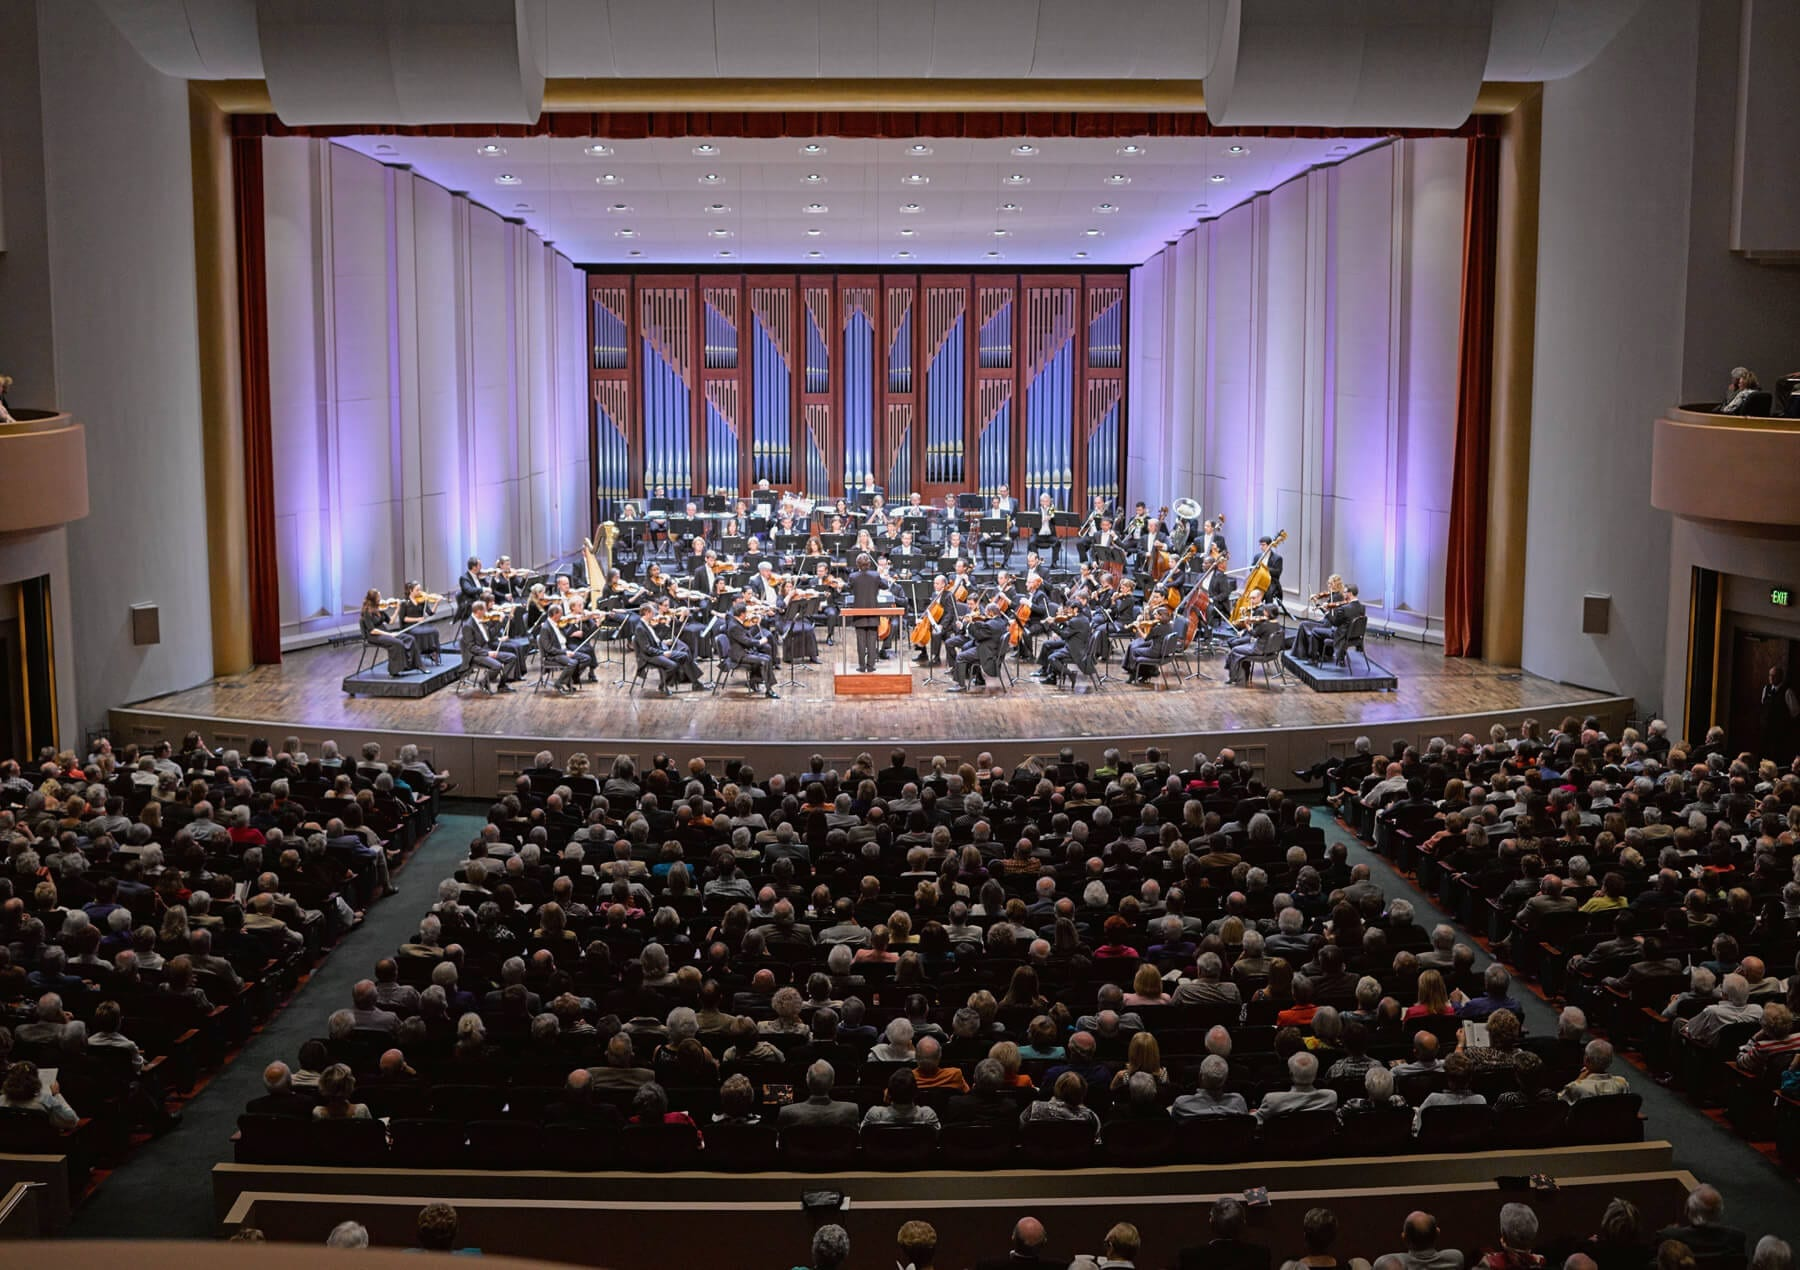 hayes-hall-audience-and-naples-philharmonic